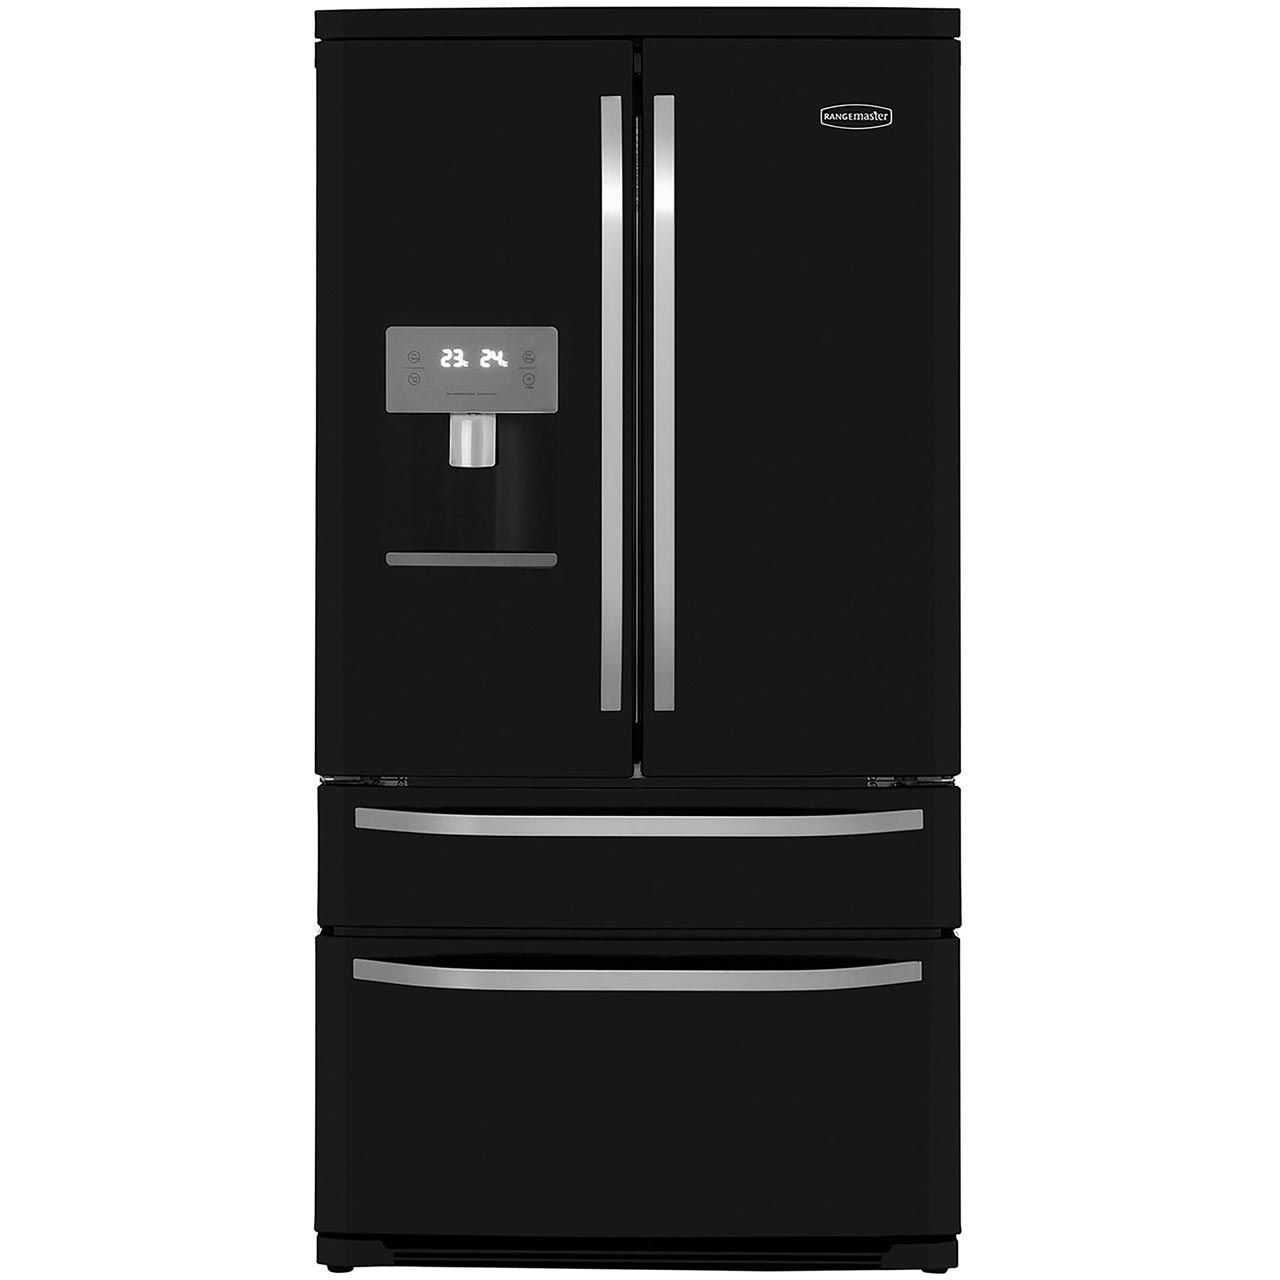 Zanussi Zrg16605wa Rangemaster American Fridge Freezer Black Kitchen And